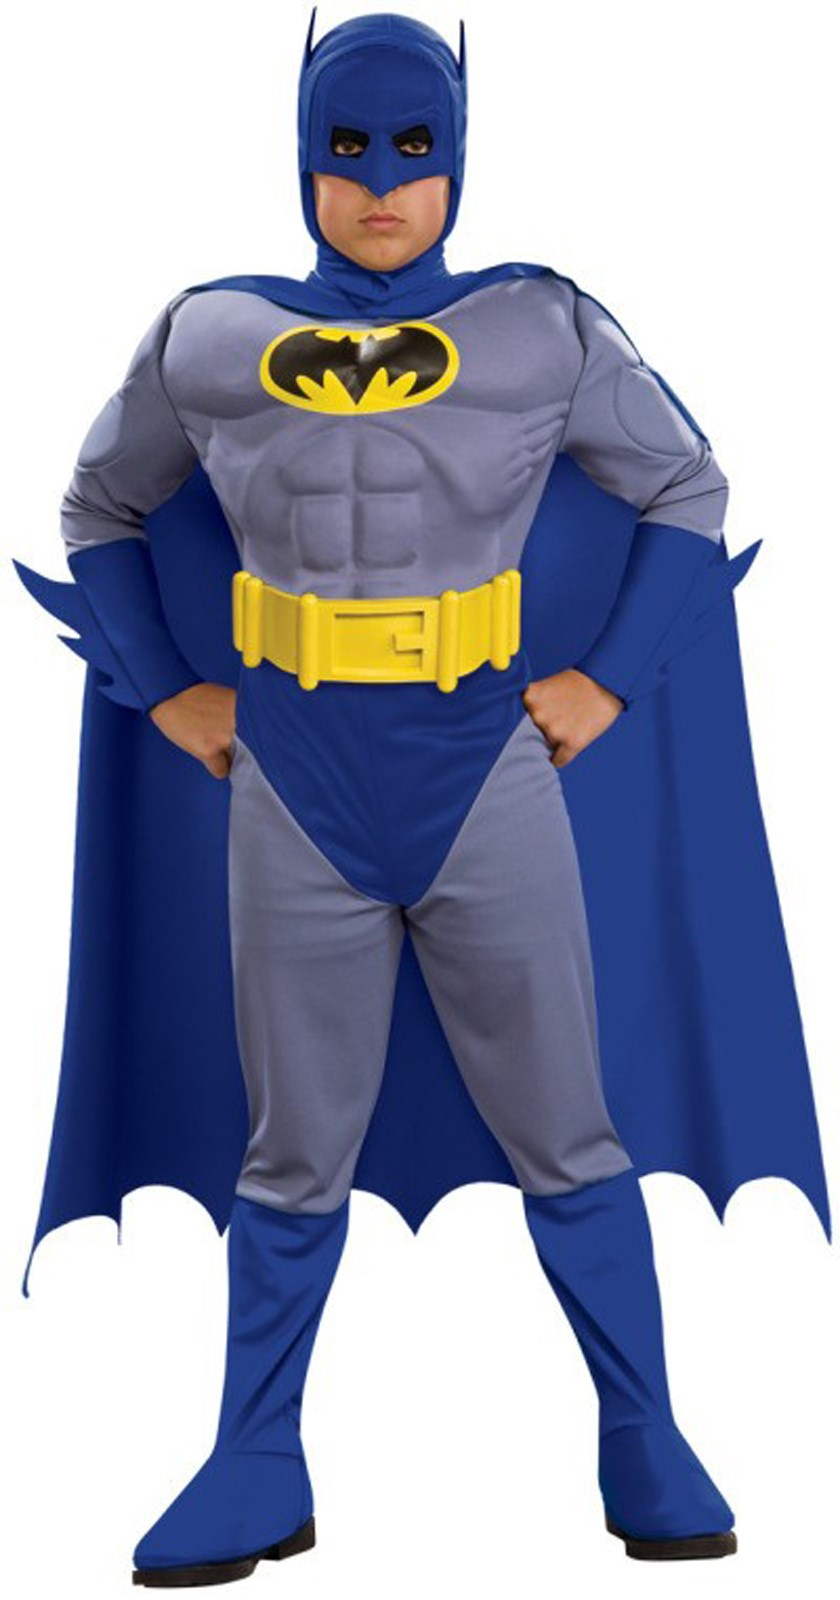 Batman Brave Bold Deluxe Batman Toddler / Child Costume Toddler (2/4)